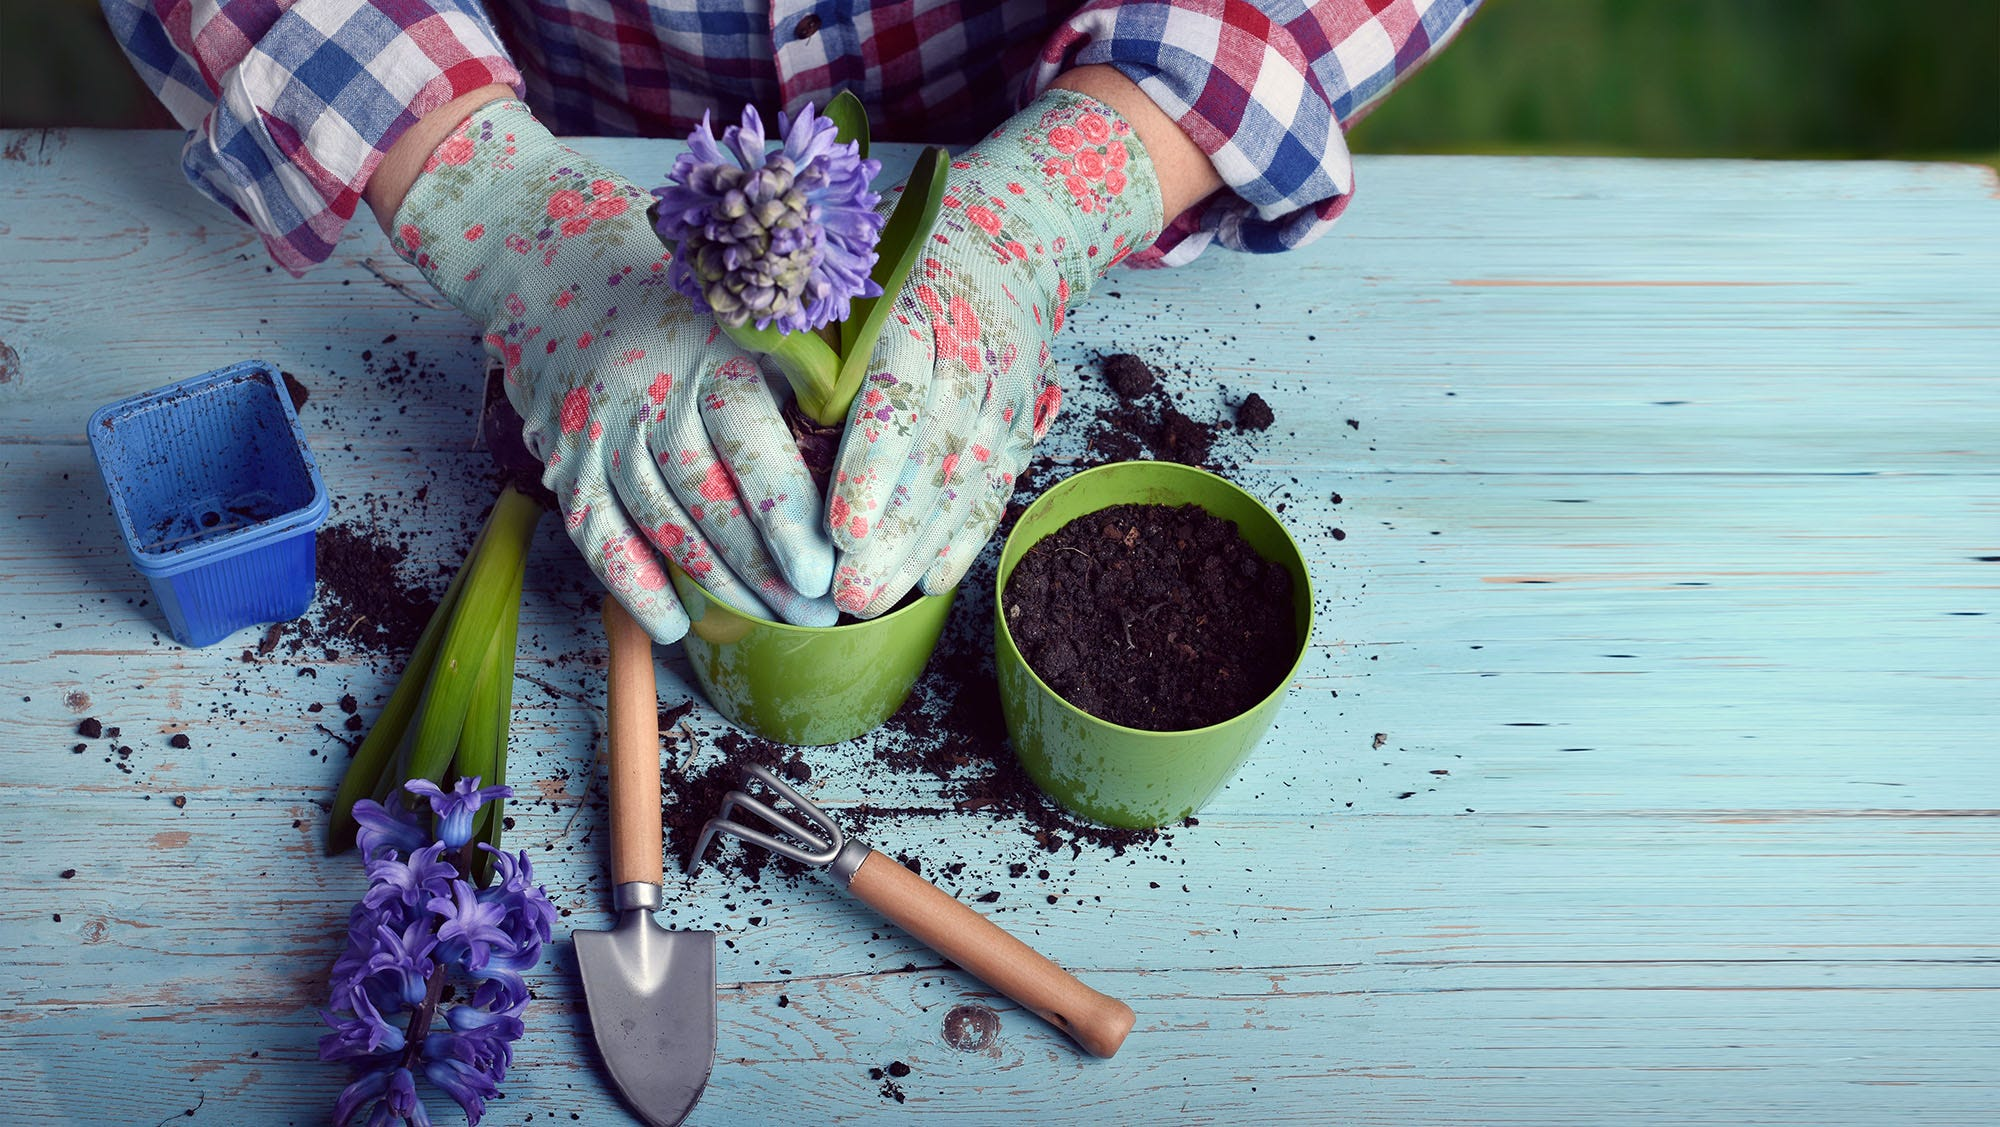 With The Arrival Of Spring Comes A Ton Of Gardening Chores As Plants, Well,  Spring Back To Life. Not All Tasks Need To Be Done The Old Fashioned Way  Though.